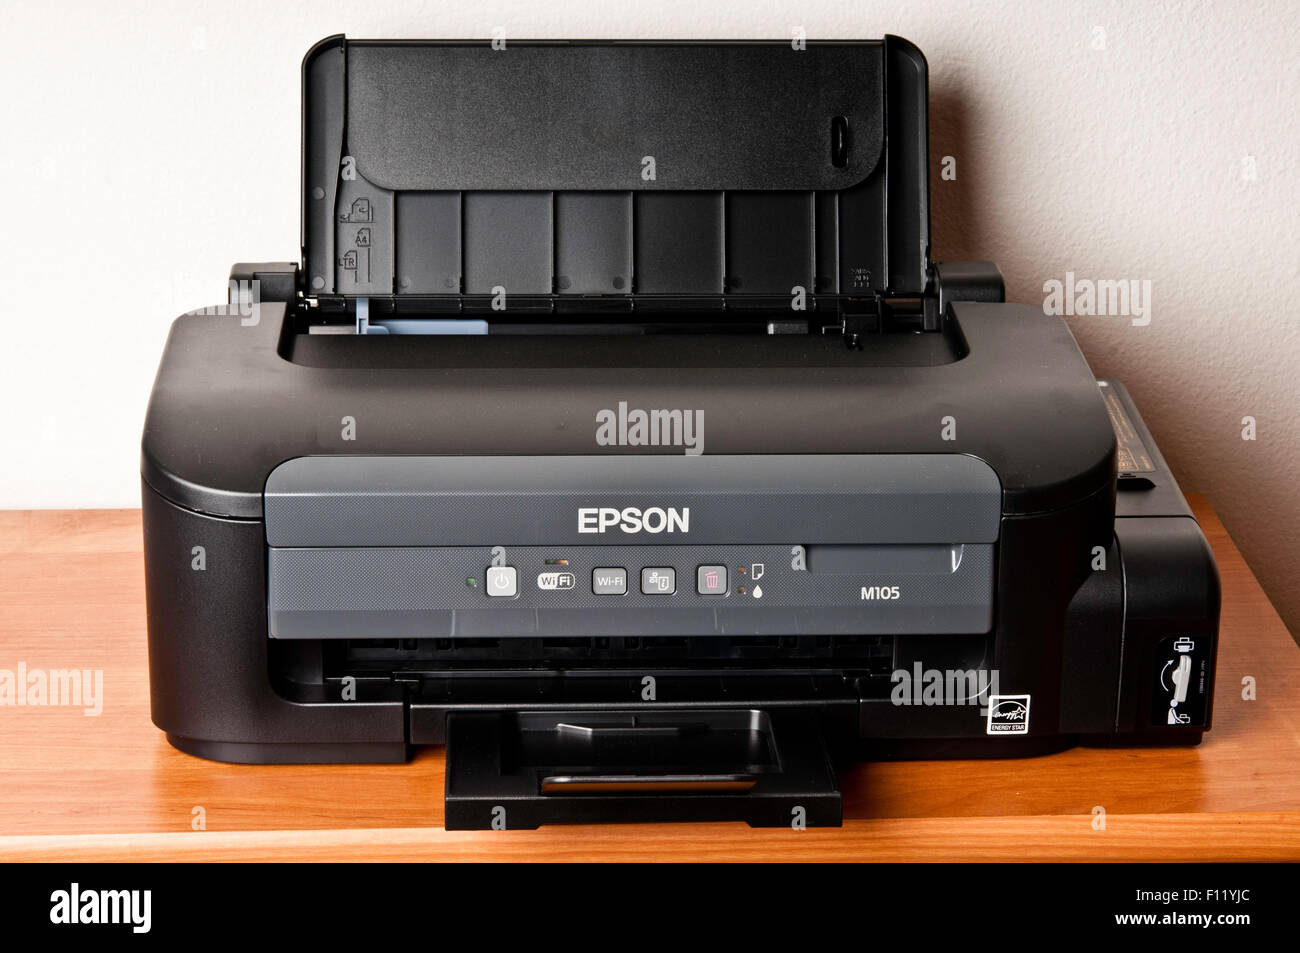 Epson M105 monochrome printer - Stock Image